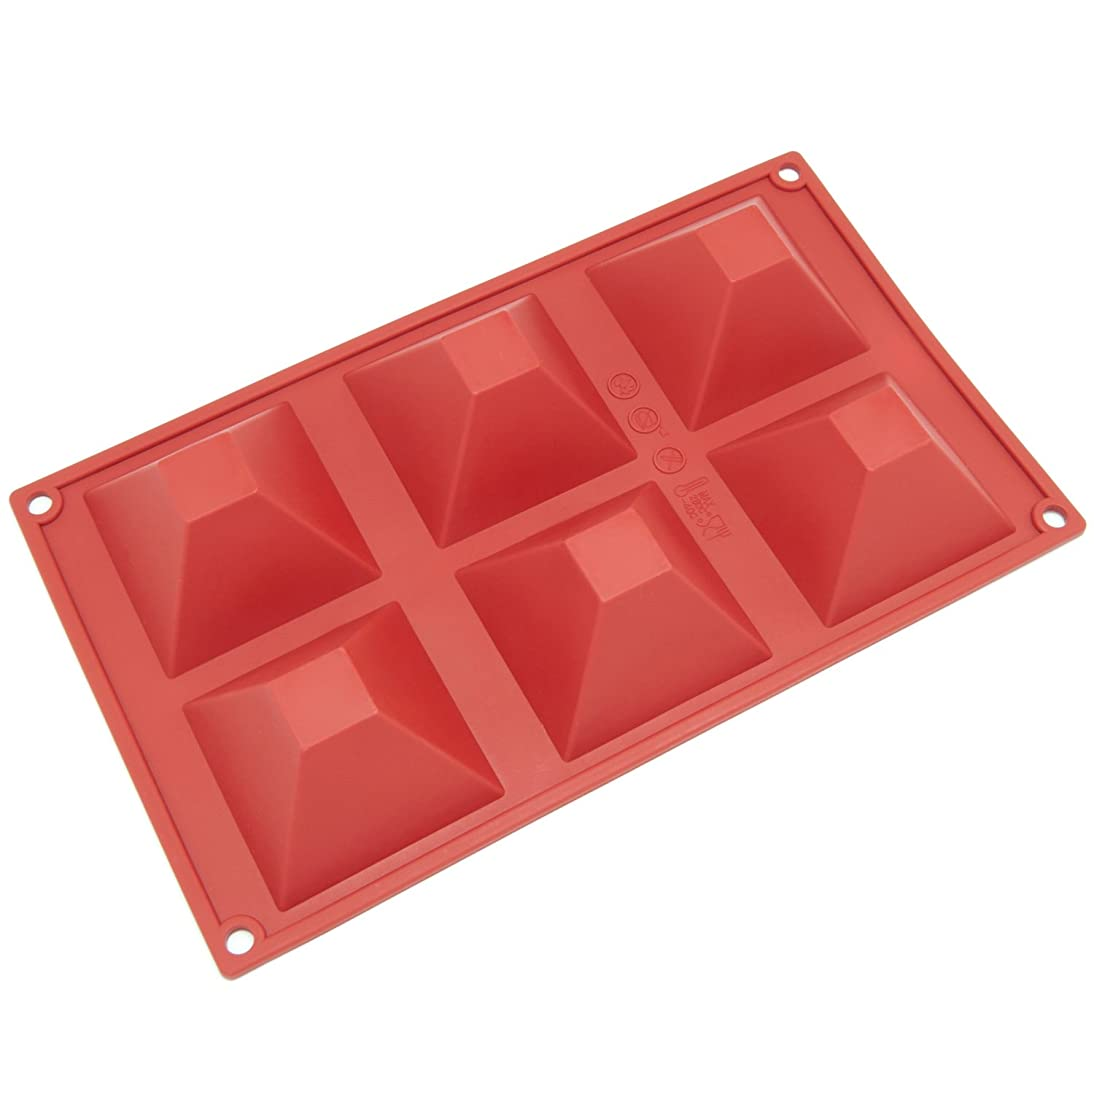 Freshware SL-101RD 6-Cavity Pyramid Shape Silicone Mold for Soap, Cake, Bread, Cupcake, Cheesecake, Cornbread, Muffin, Brownie, and More